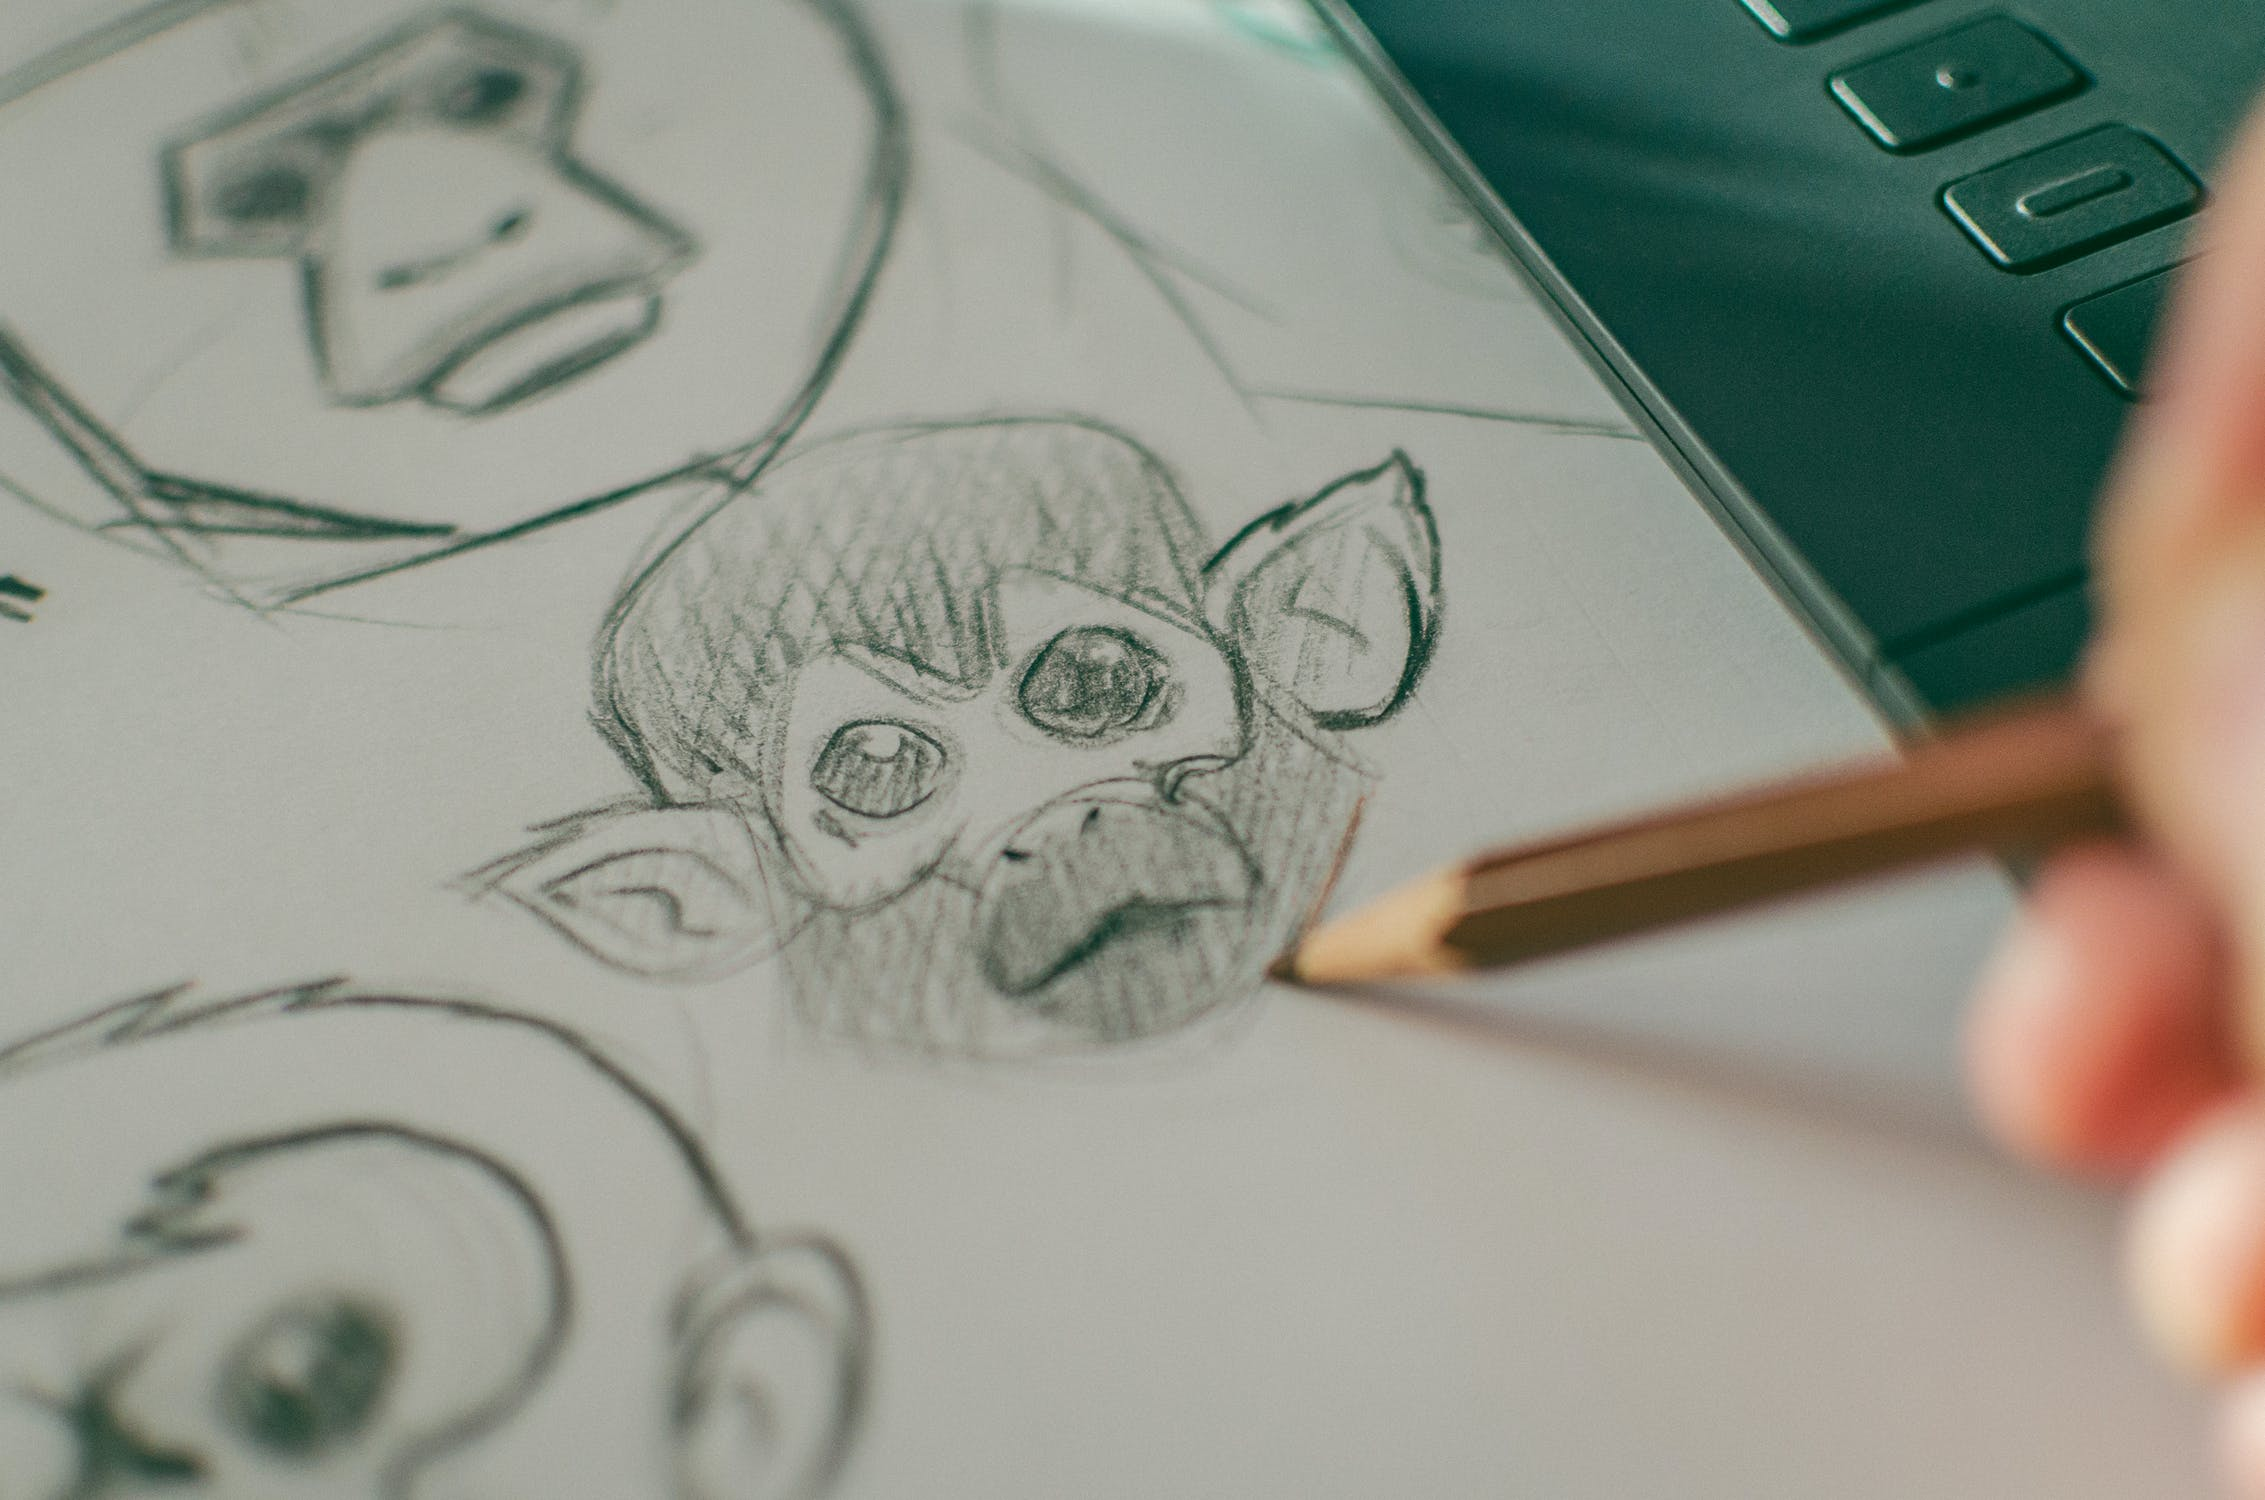 Drawing - Creatives for Cool Creatives Online Journal